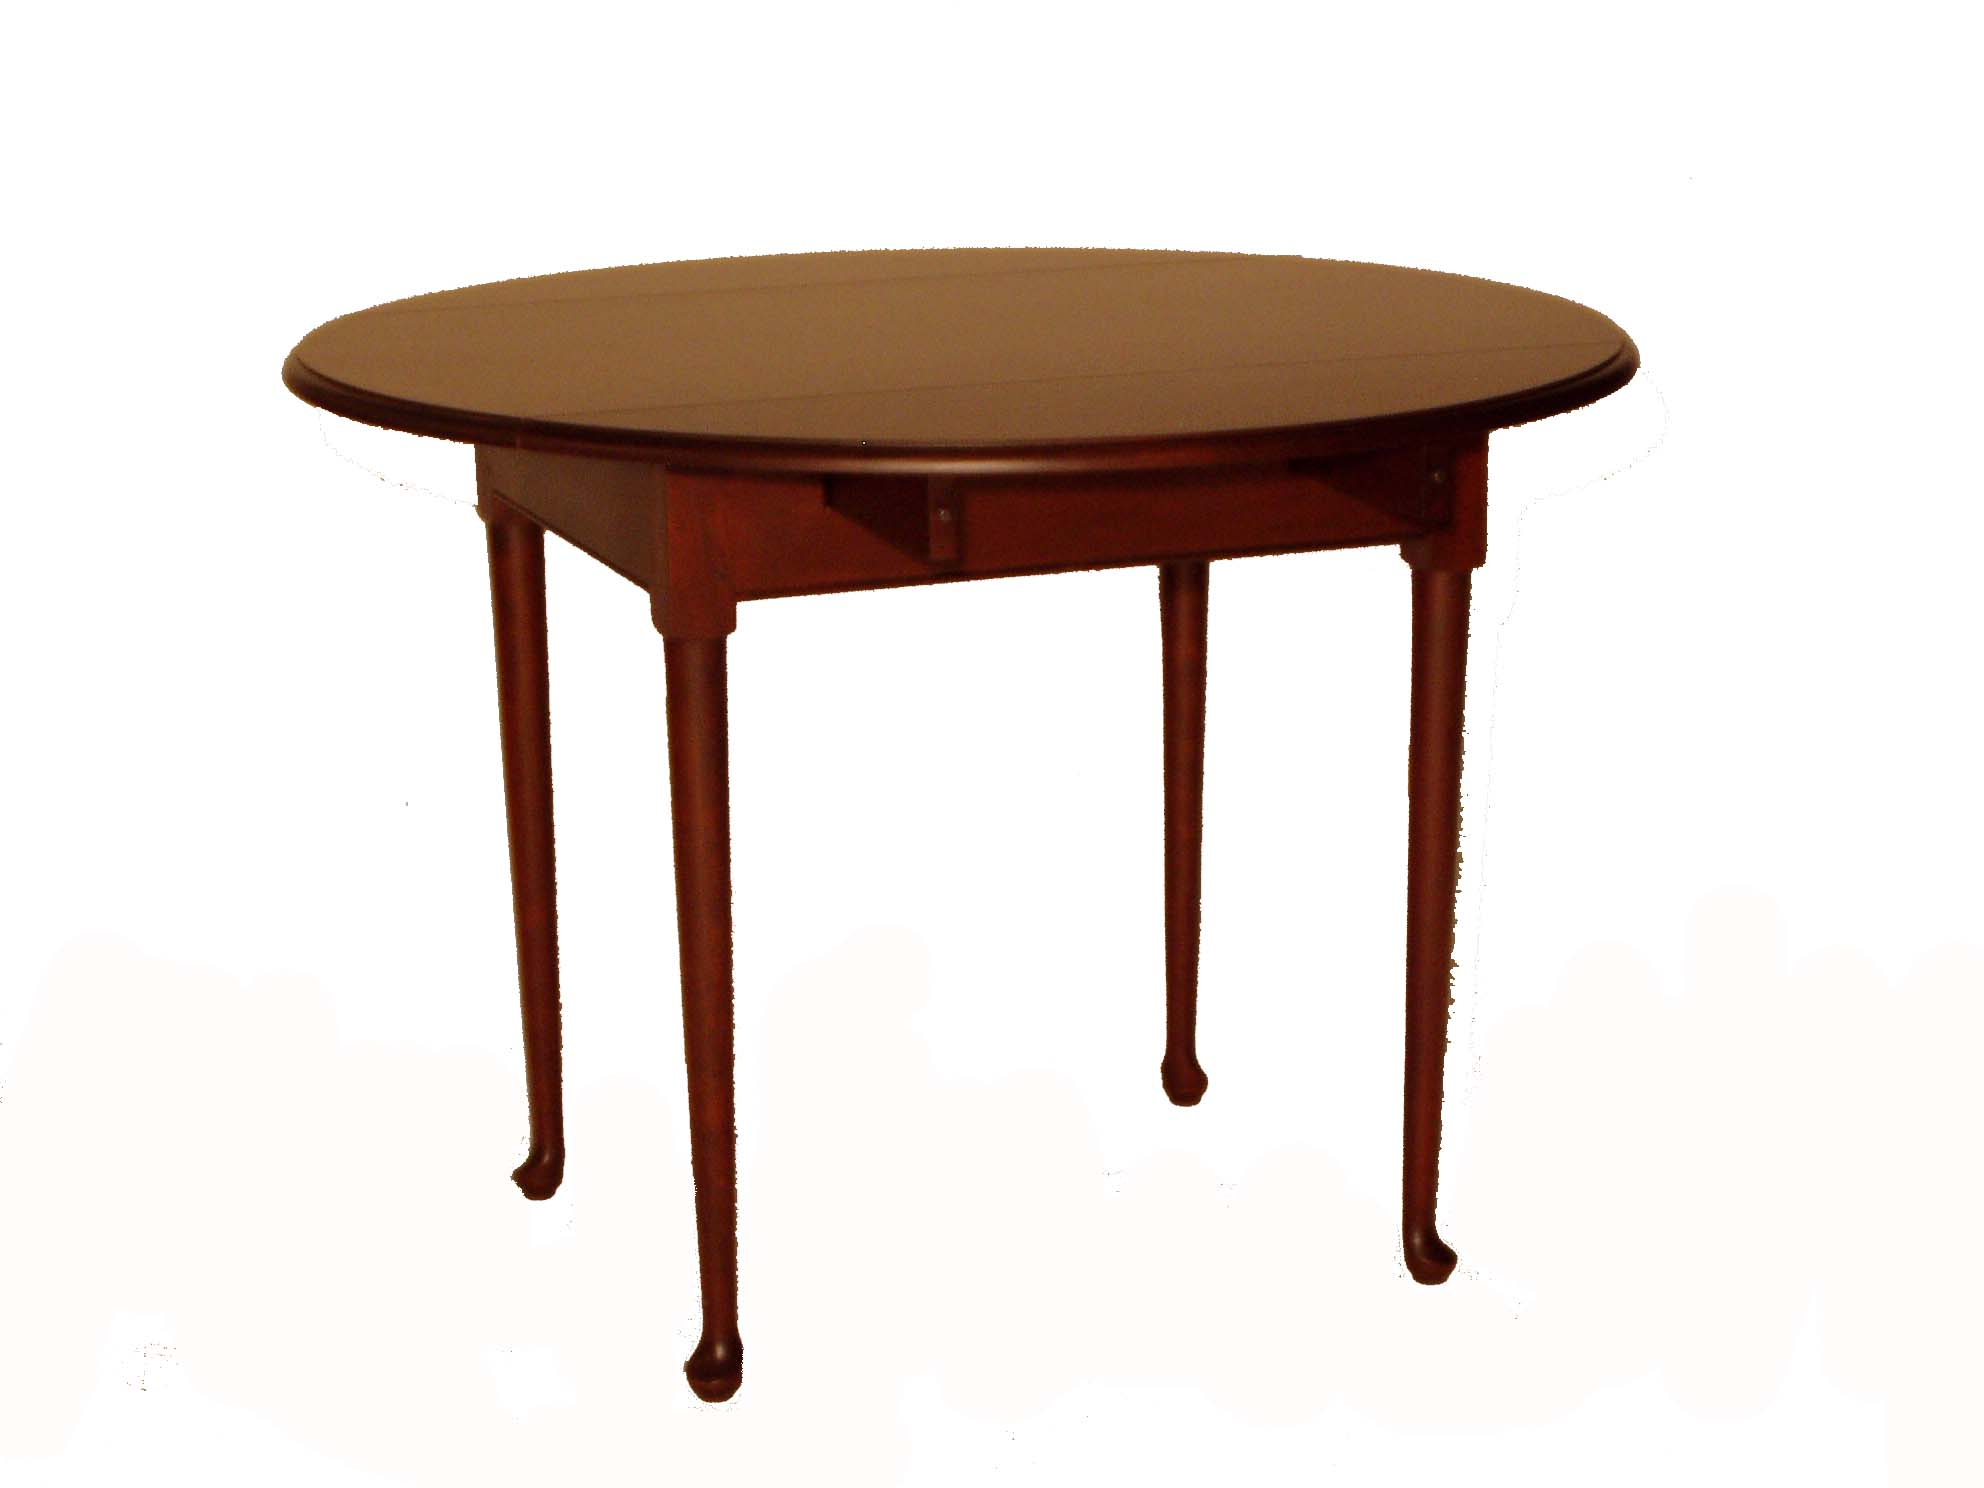 Image of: Drop Leaf Table ideas